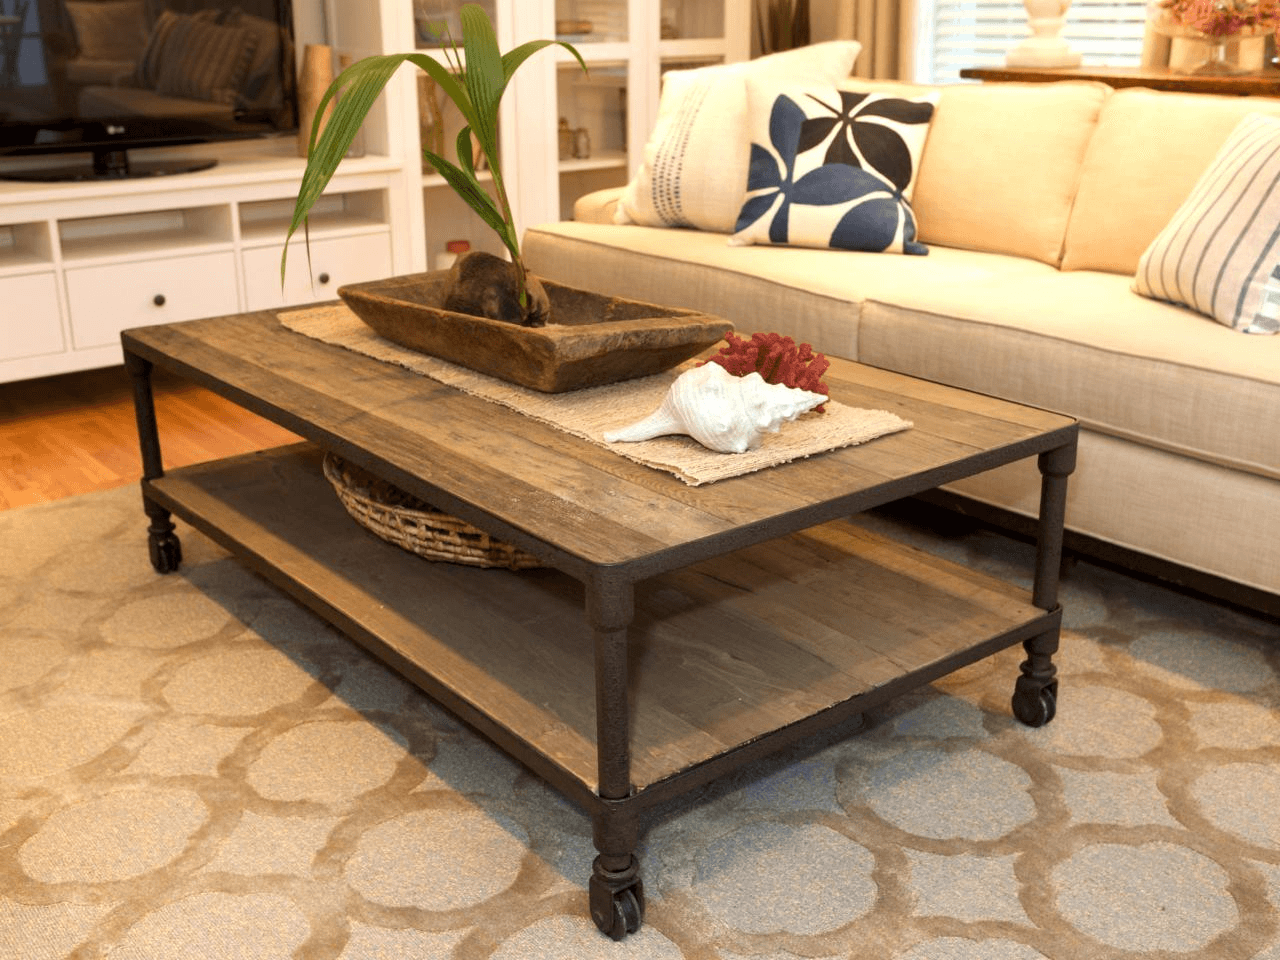 Plant for coffee table living room decoration